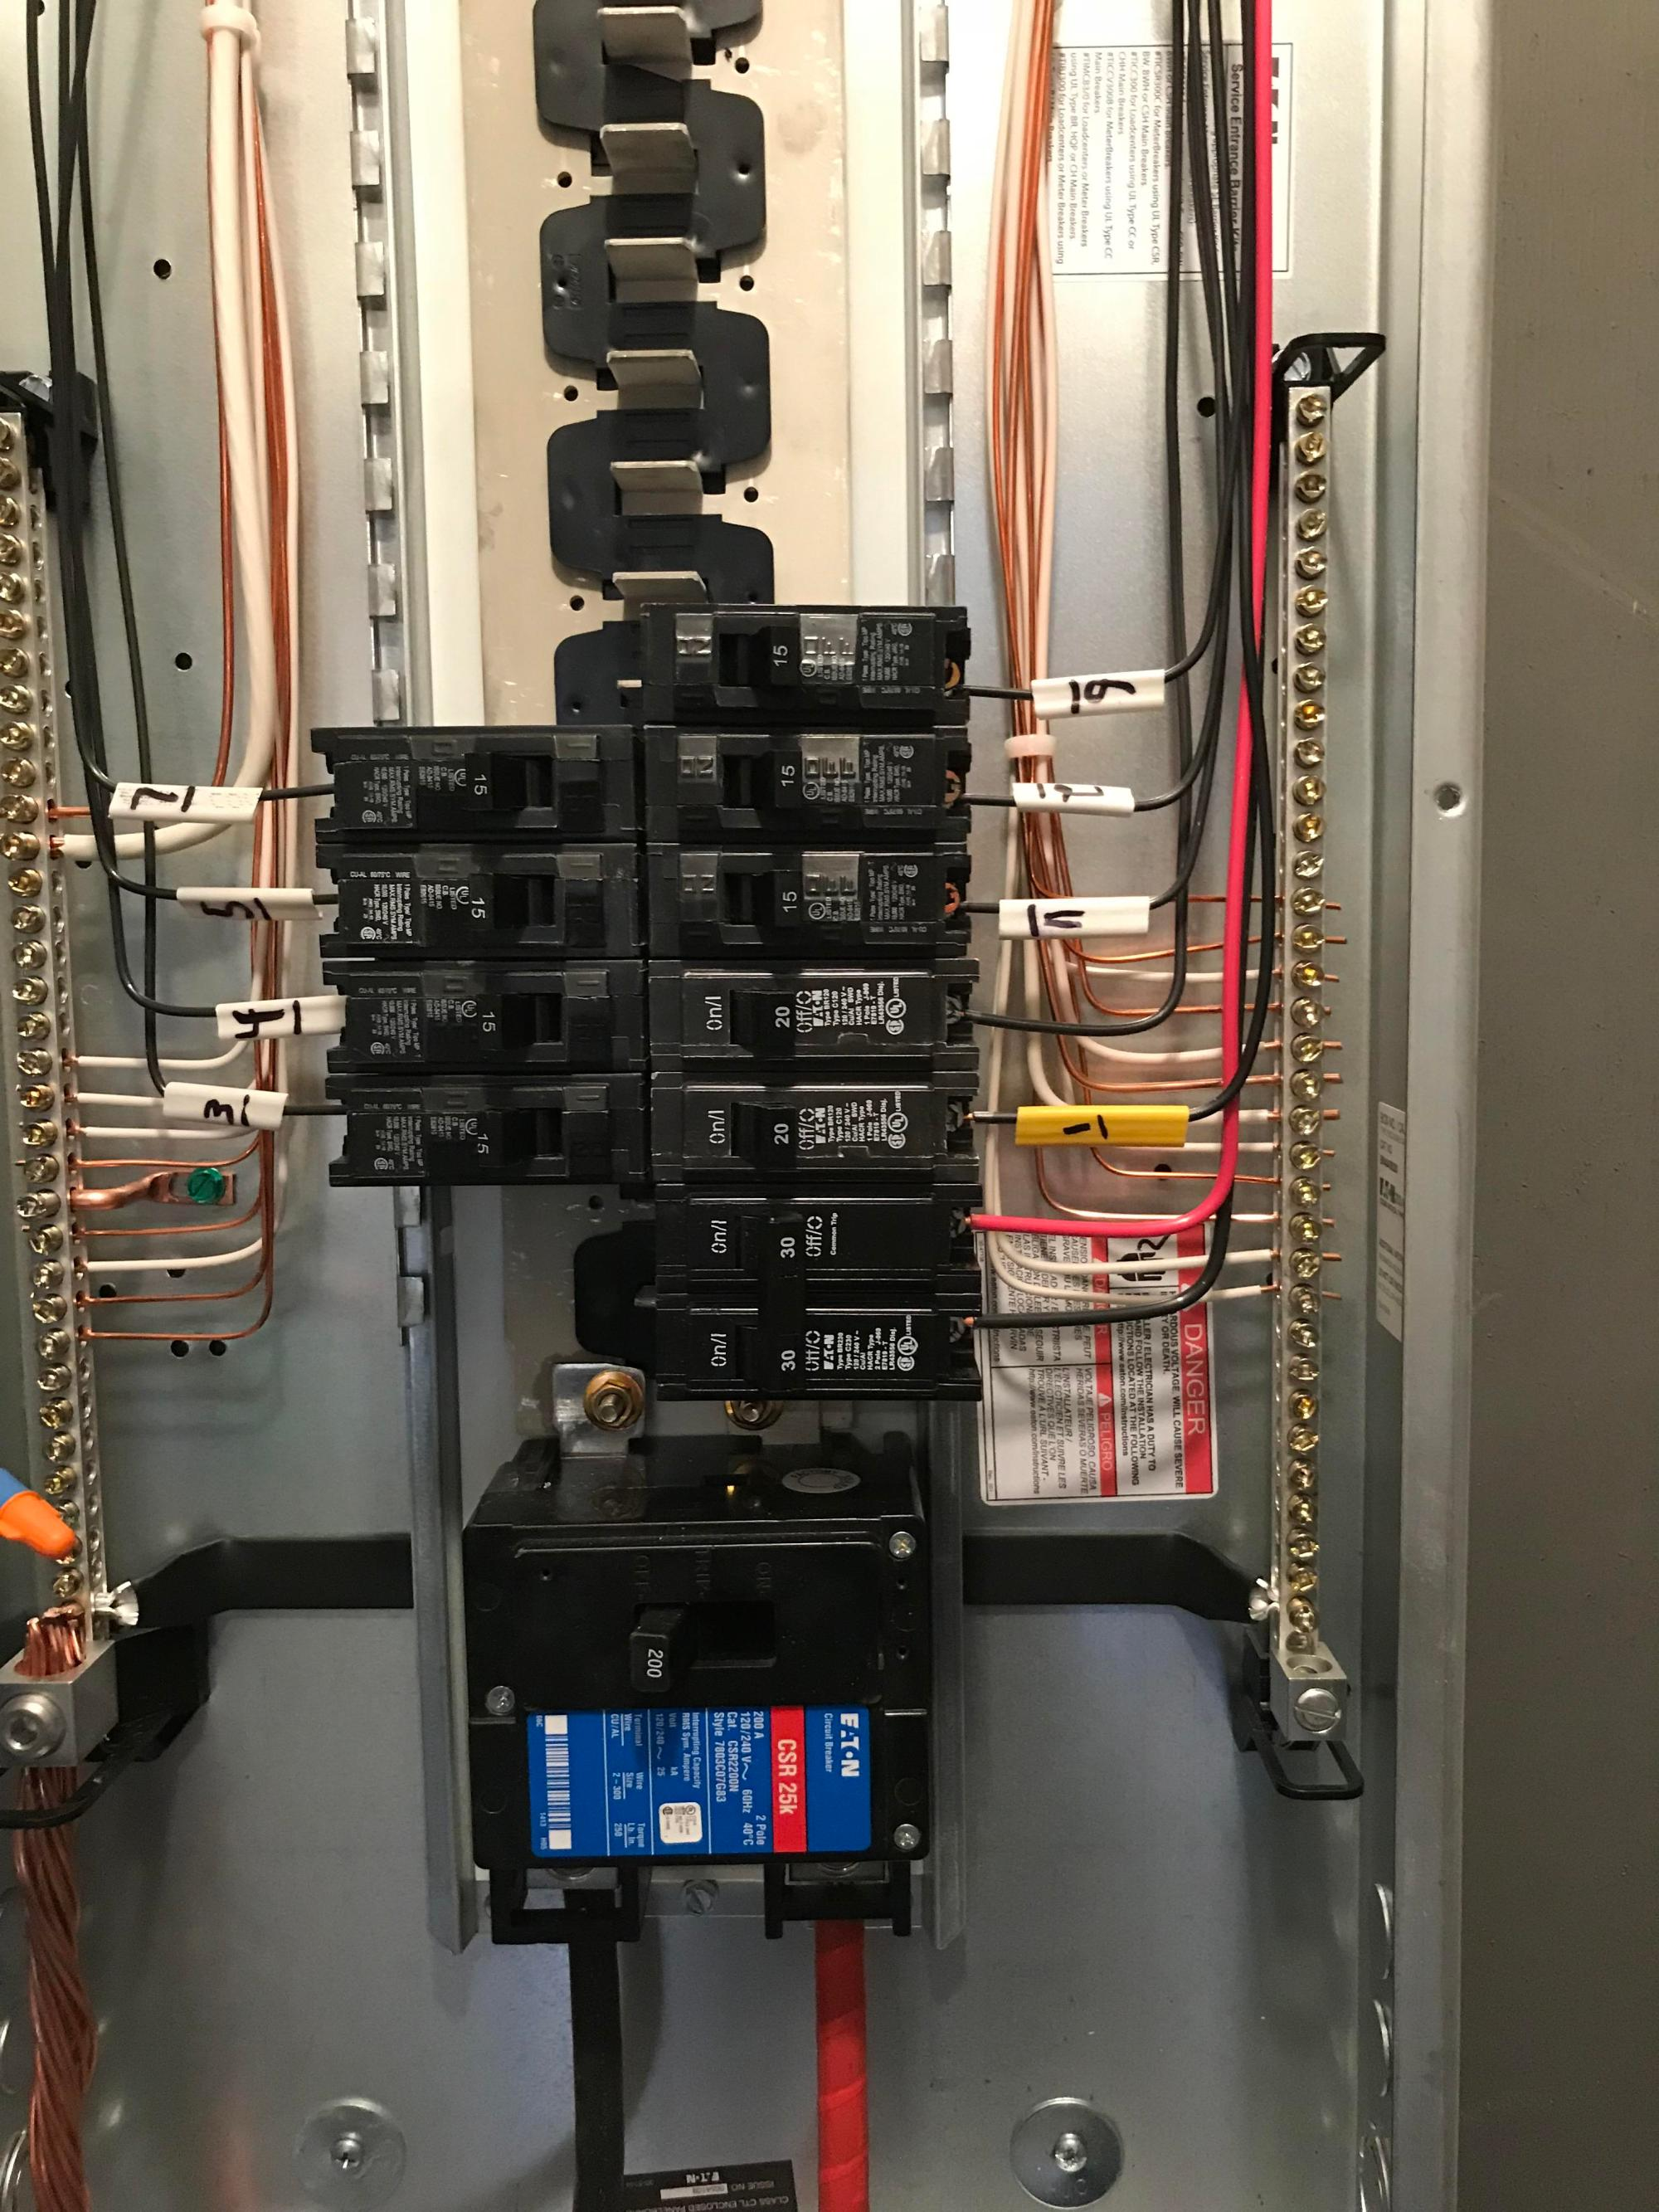 hight resolution of new 200amp panel install cableporn 200 amp panel install cost 200 amp panel wiring